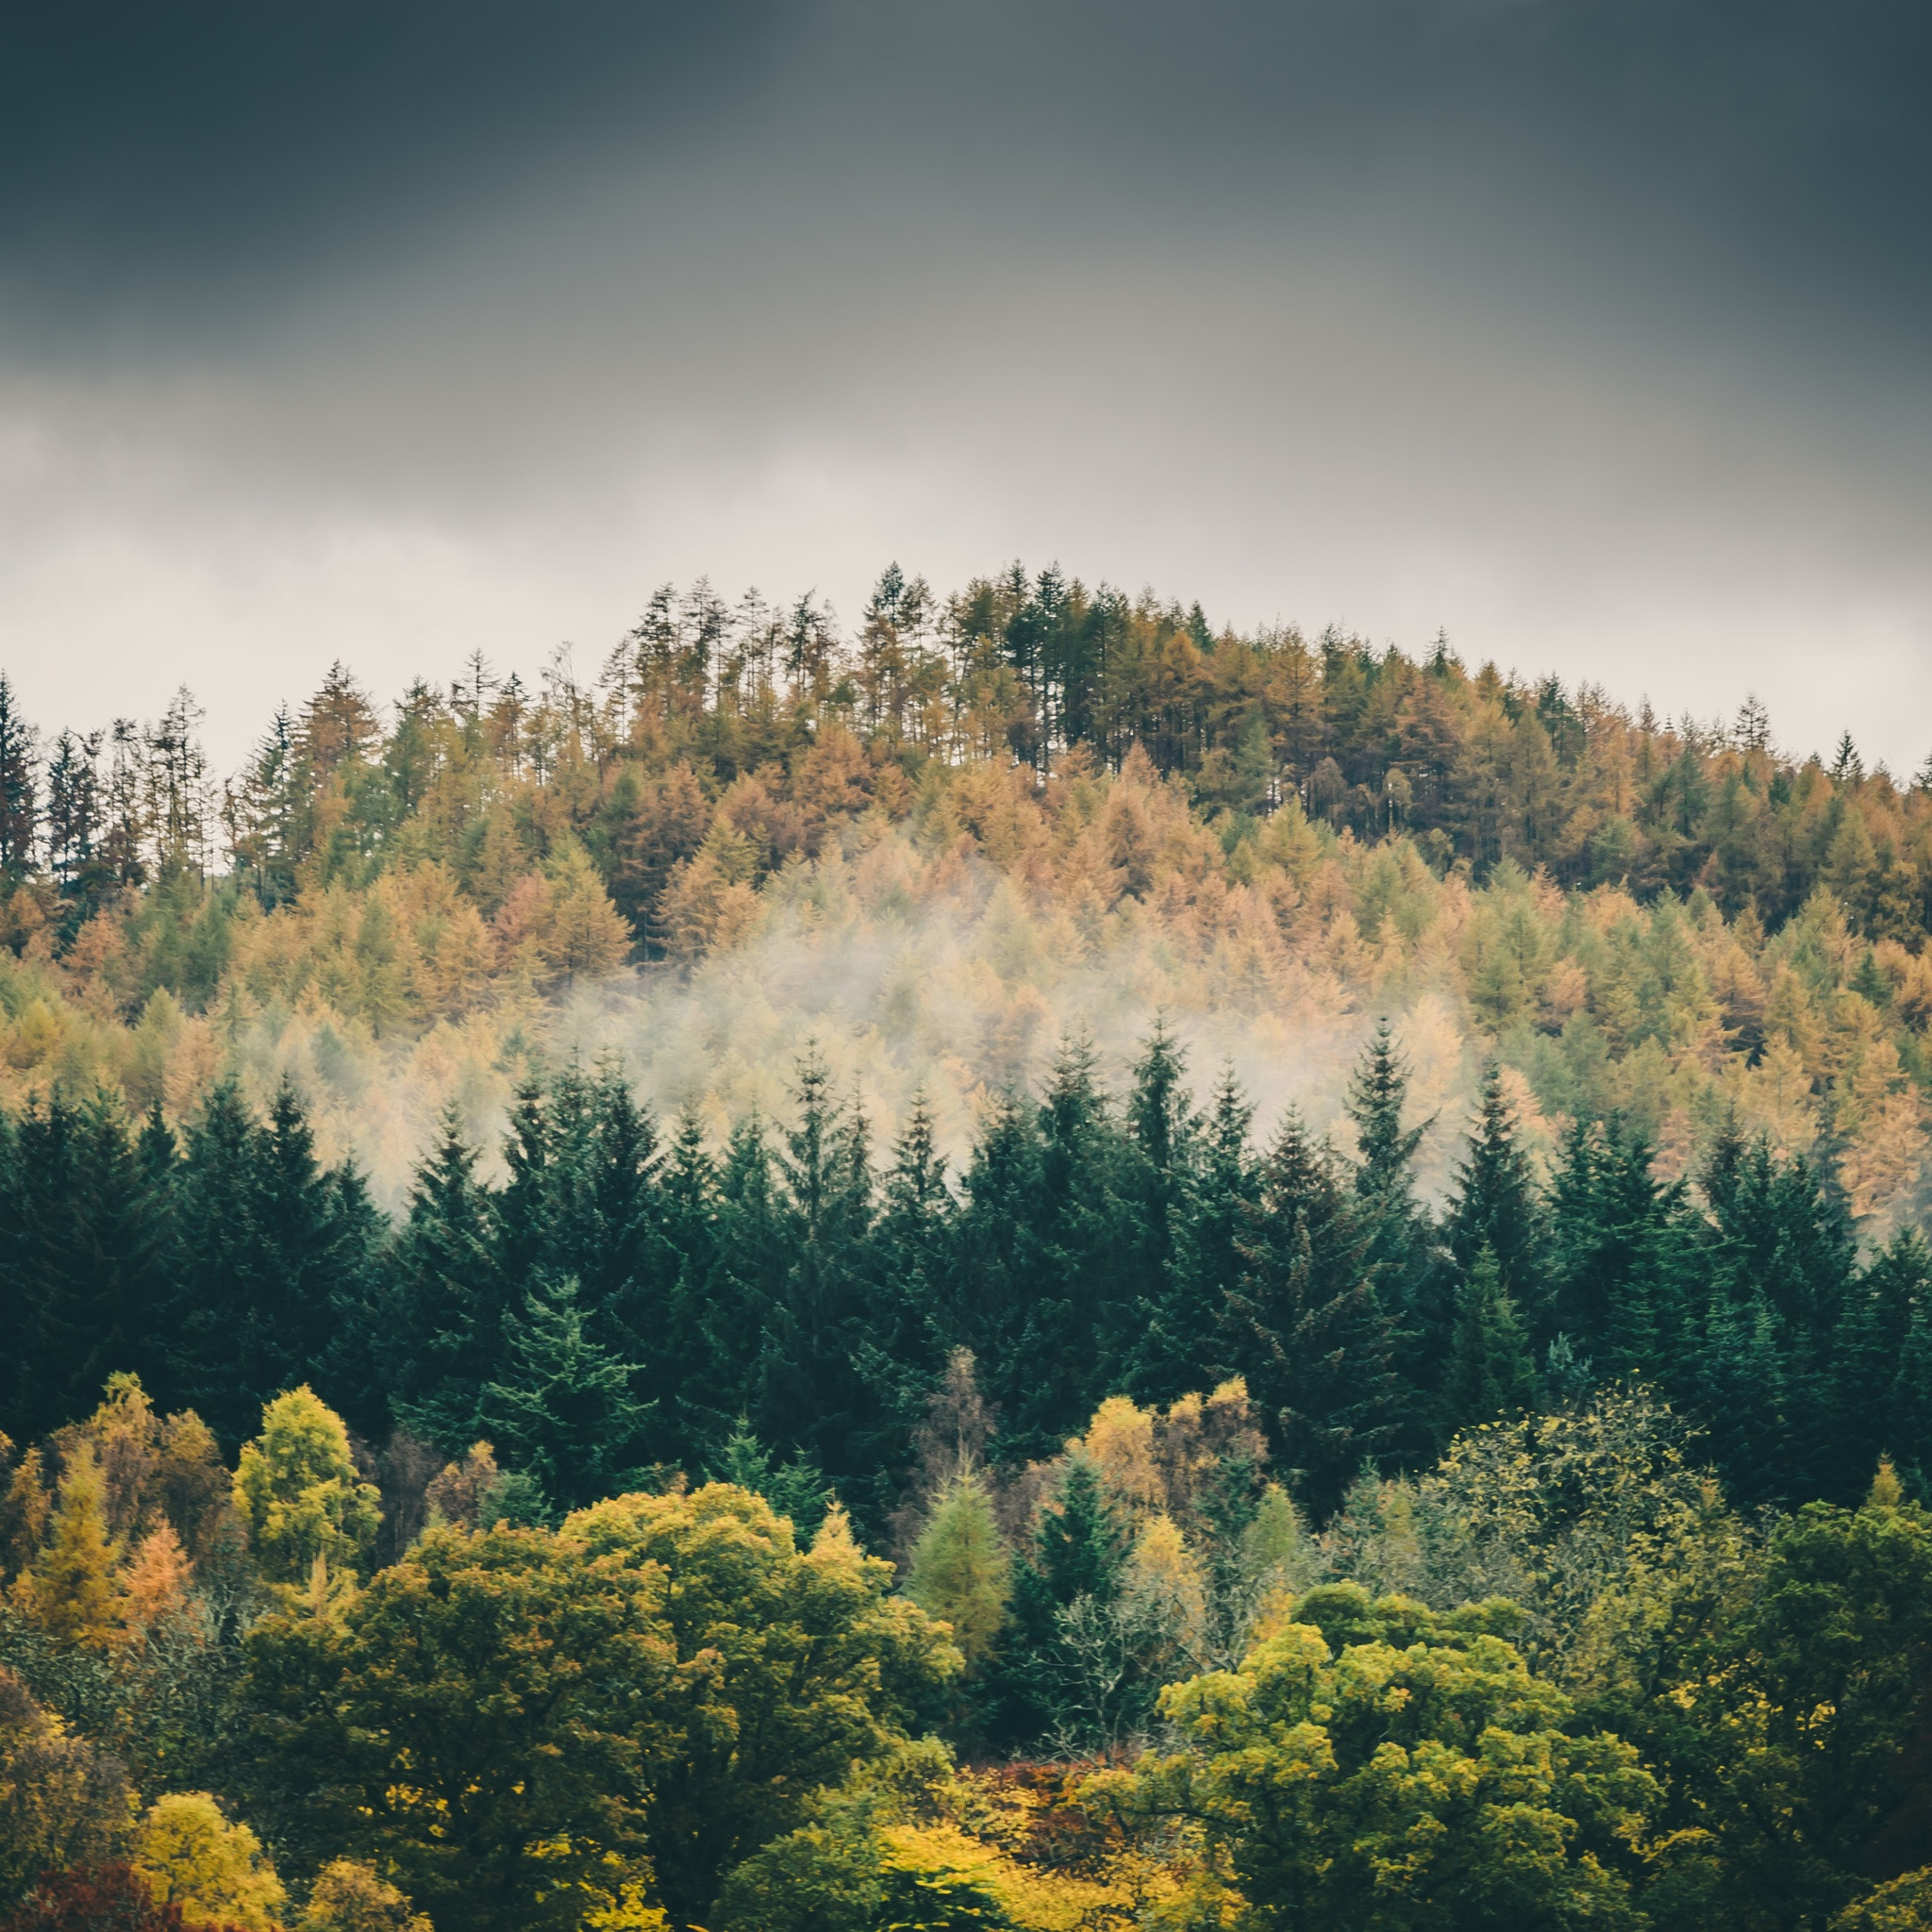 The Misty Pines by souravbhaduri